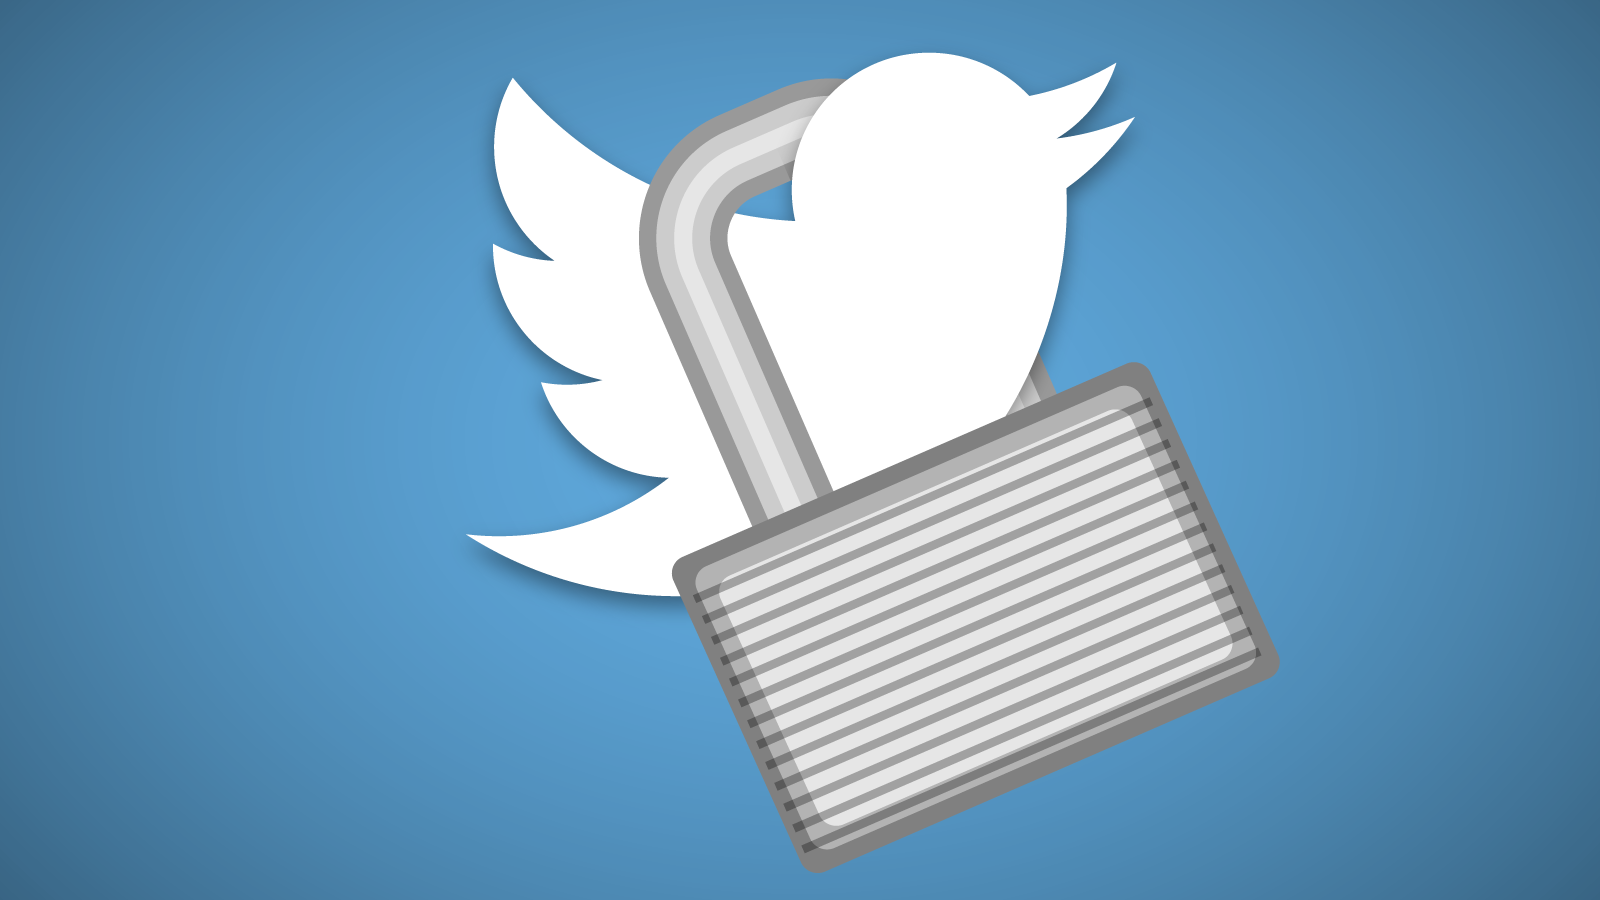 Twitter has an unlaunched 'Secret' encrypted messages feature		 		 	Josh Constine         @	       	12 hours